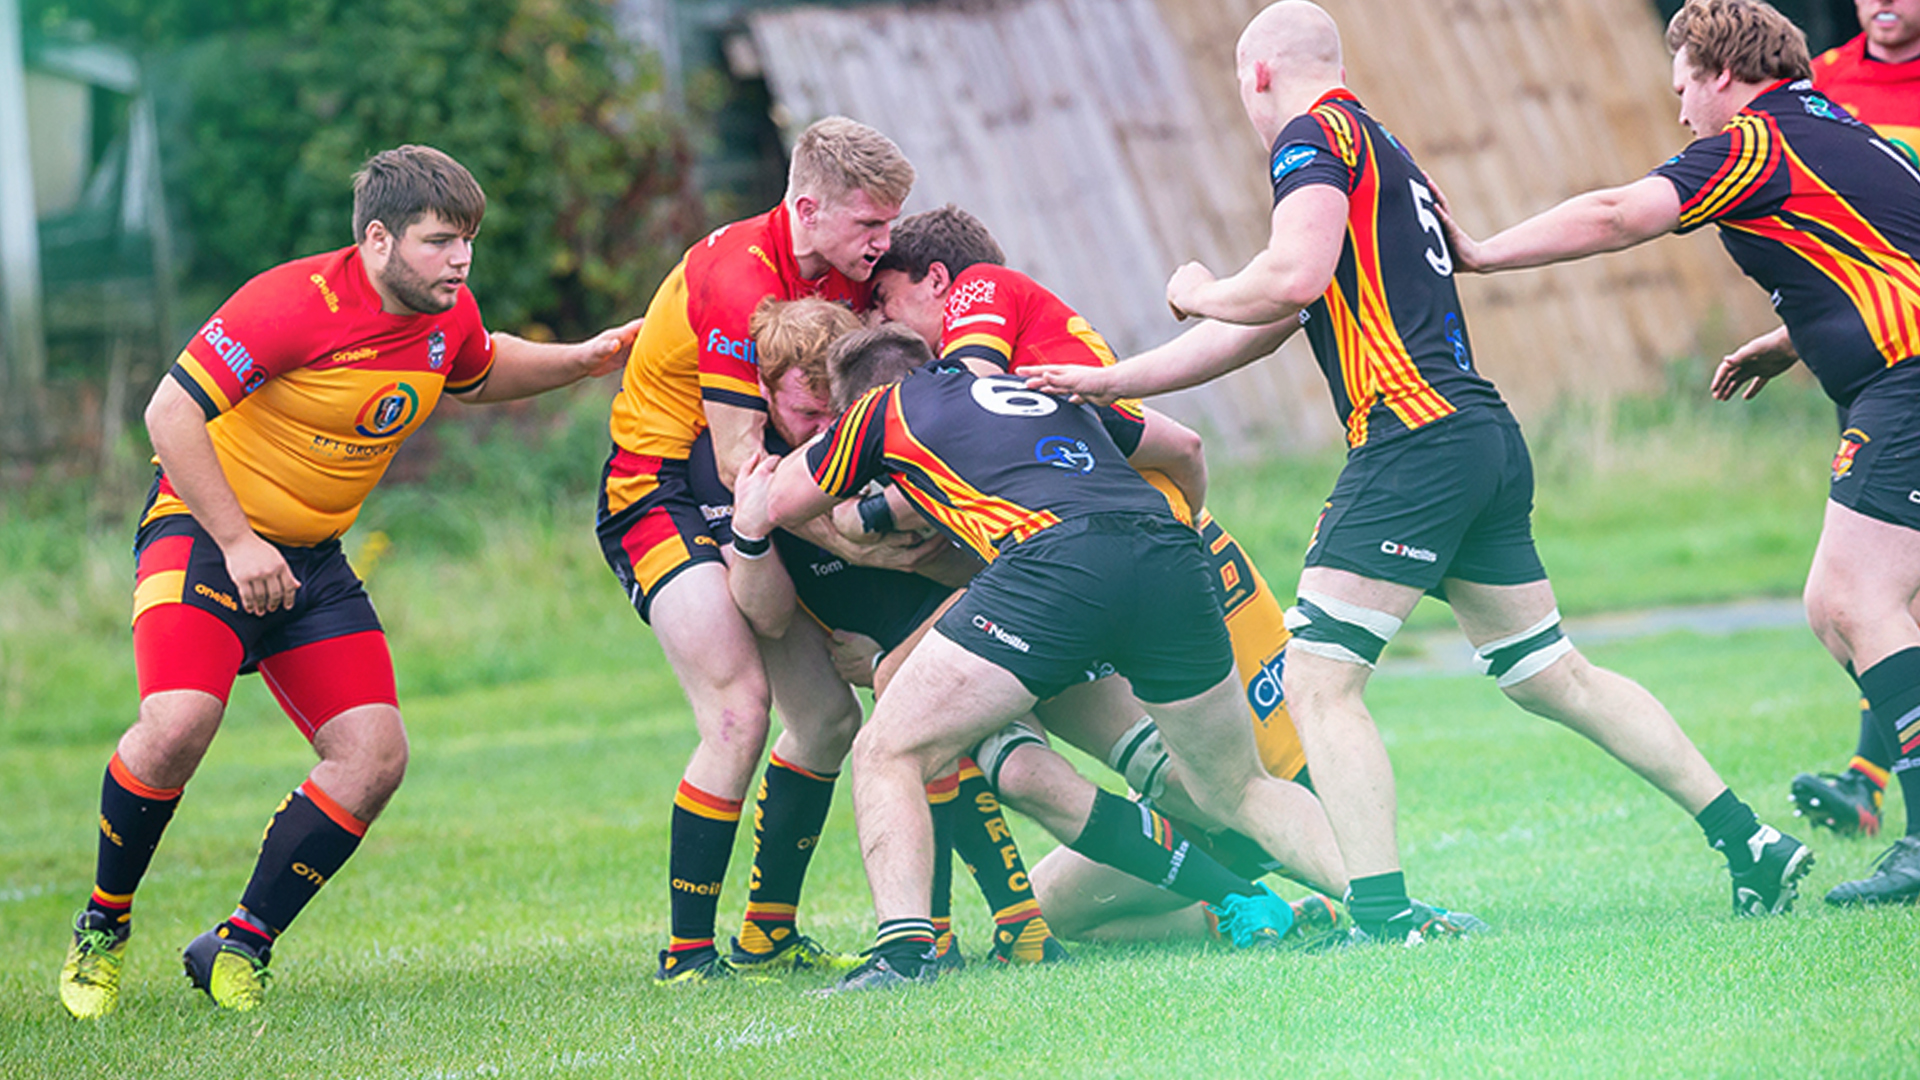 EFT Group | Apprentices selected for Lancashire Rugby